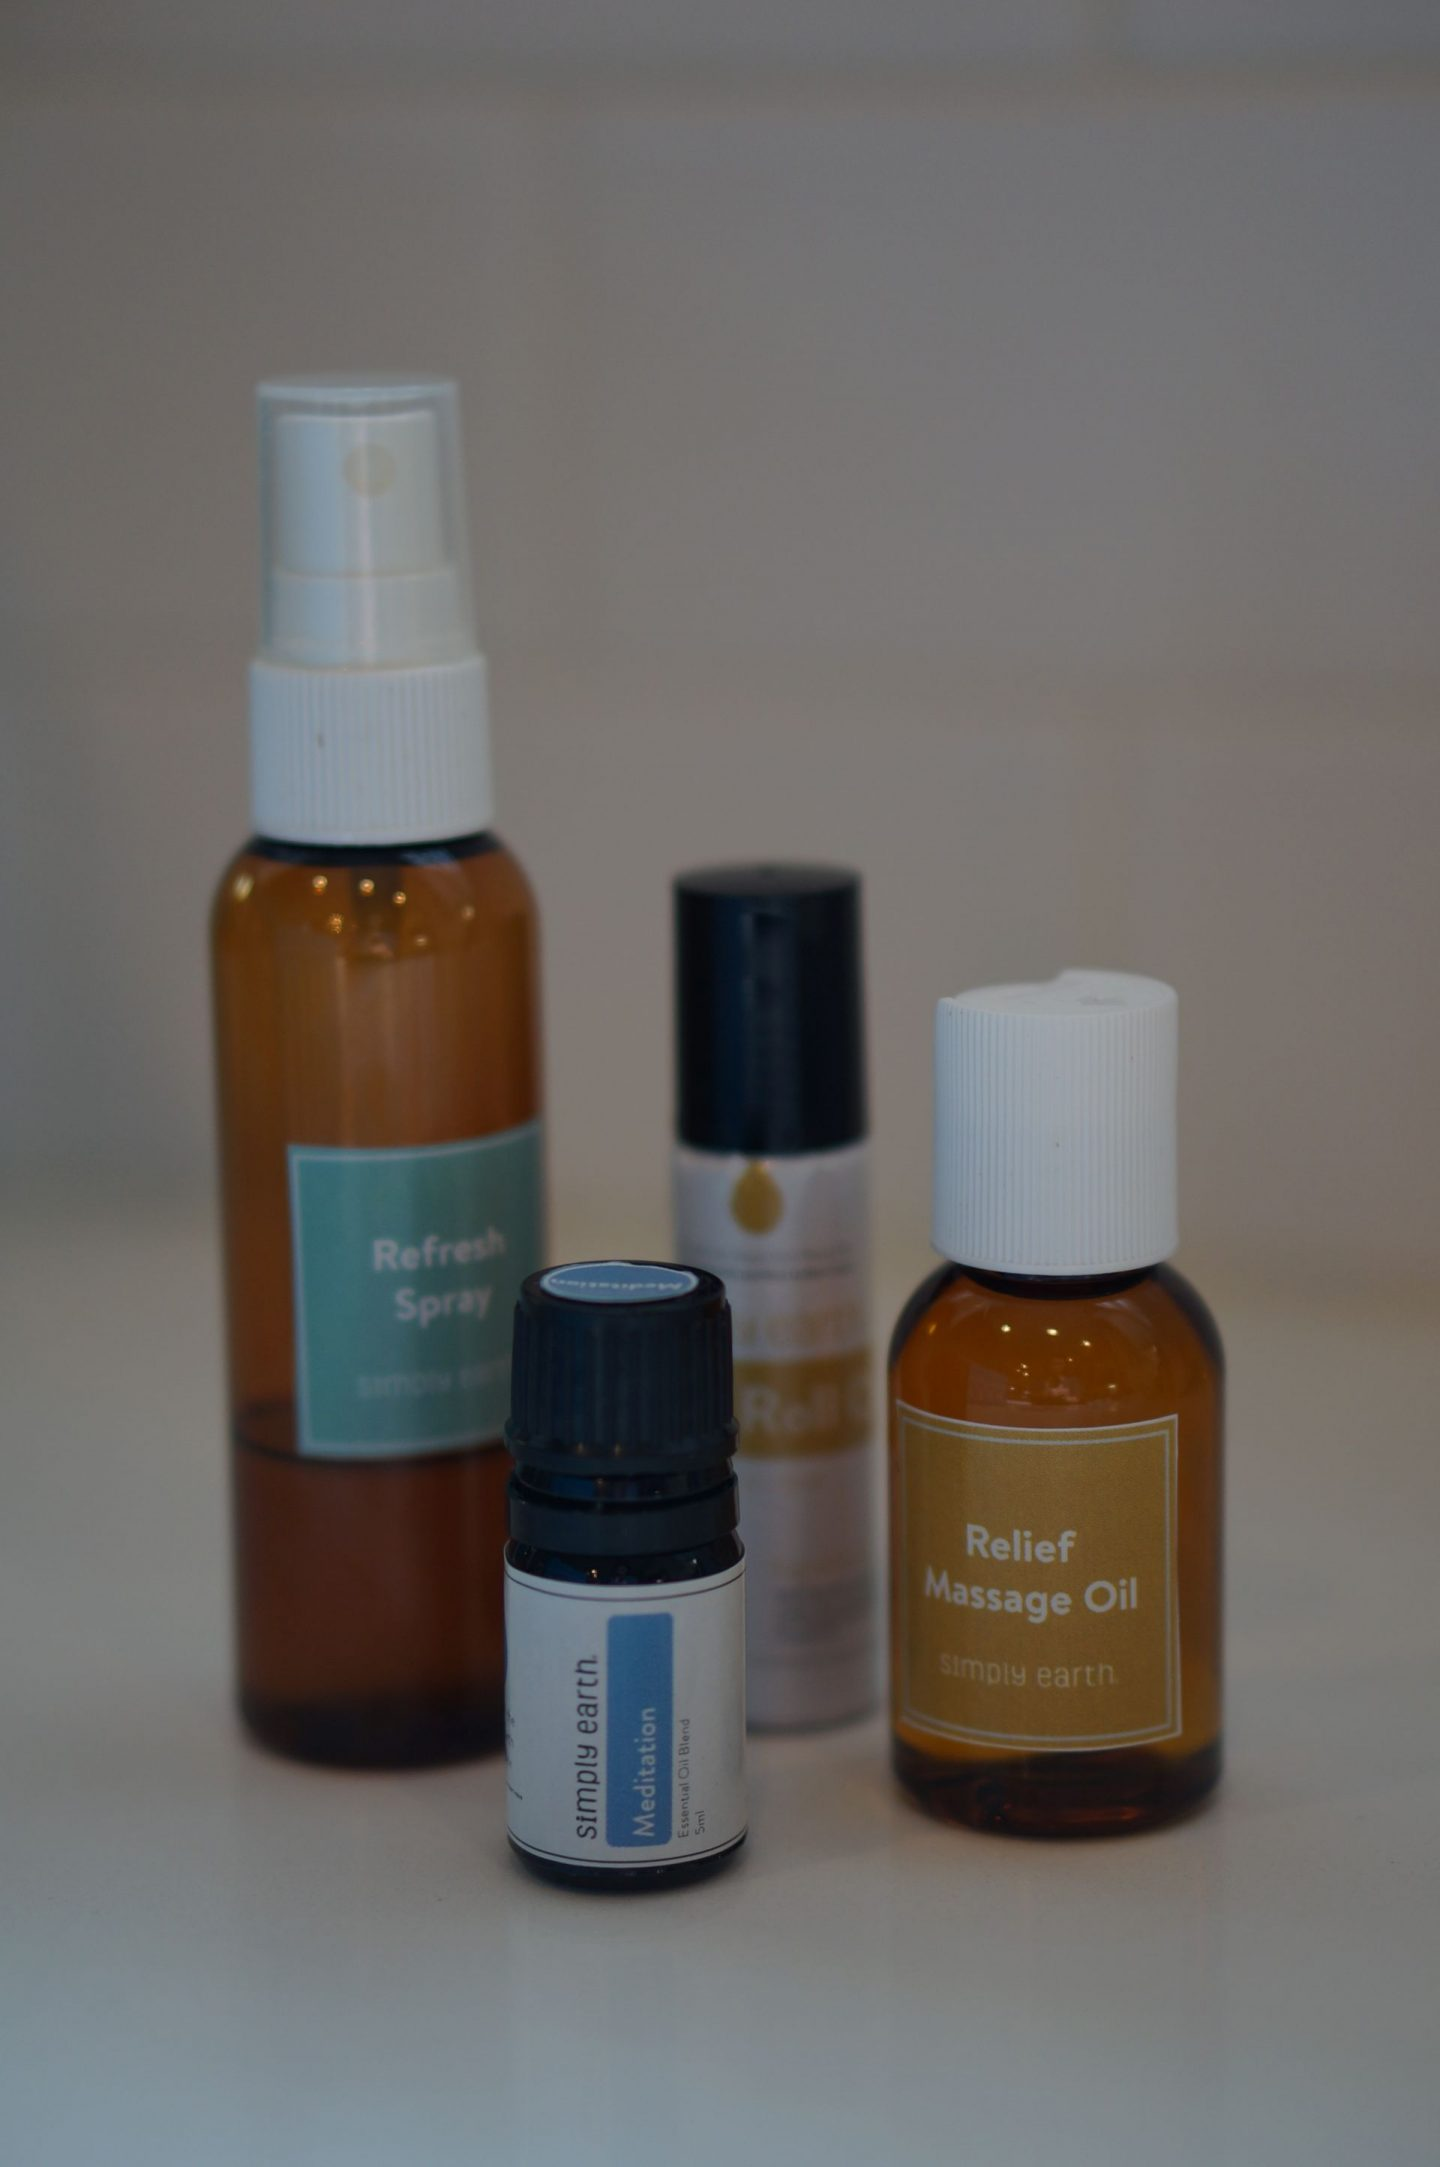 NC blogger Rebecca Lately is sharing her Simply Earth January 2020 box. If you are looking for a way to further your essential oil journey, this is it!